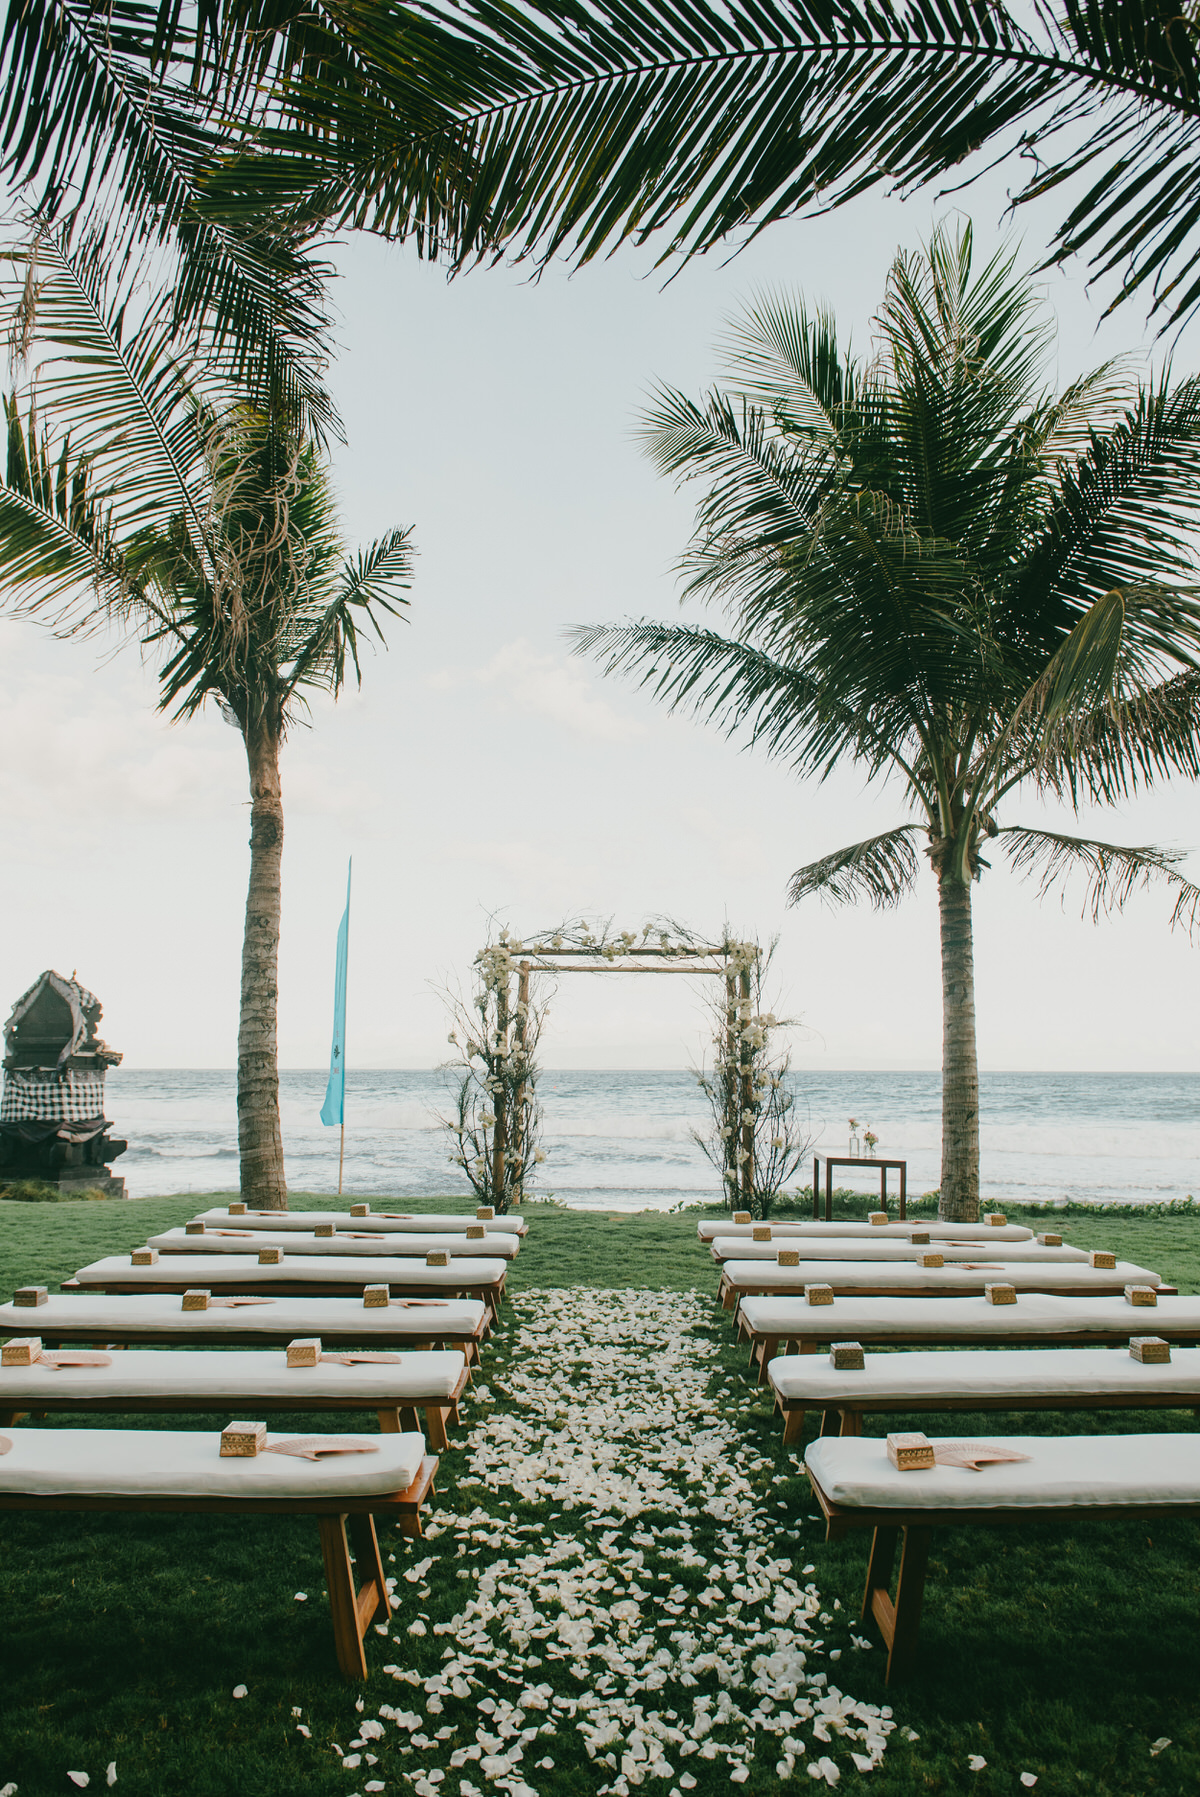 bali wedding destination-wedding in bali - bali photographer - komune beach club - profesional bali wedding photographer - diktatphotography - Jess & Craig - 52